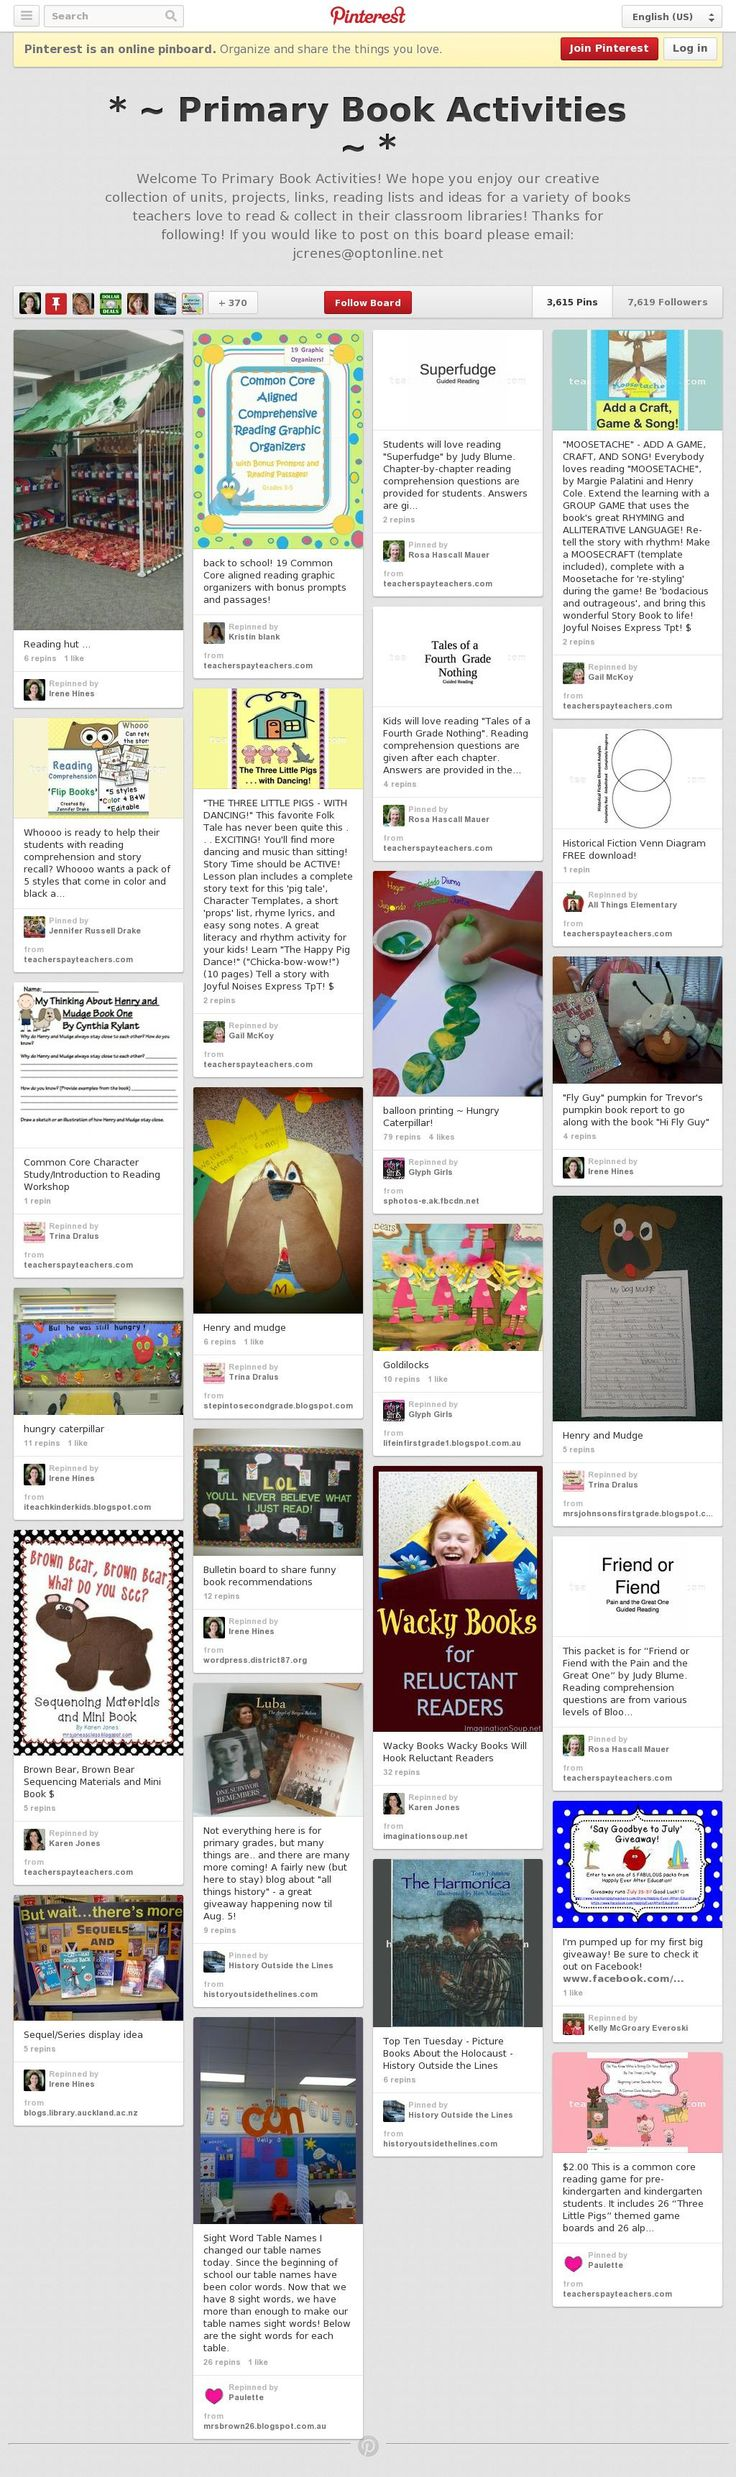 Primary Book Activities - Welcome To Primary Book Activities! We hope you enjoy our creative collection of units, projects, links & book ideas.